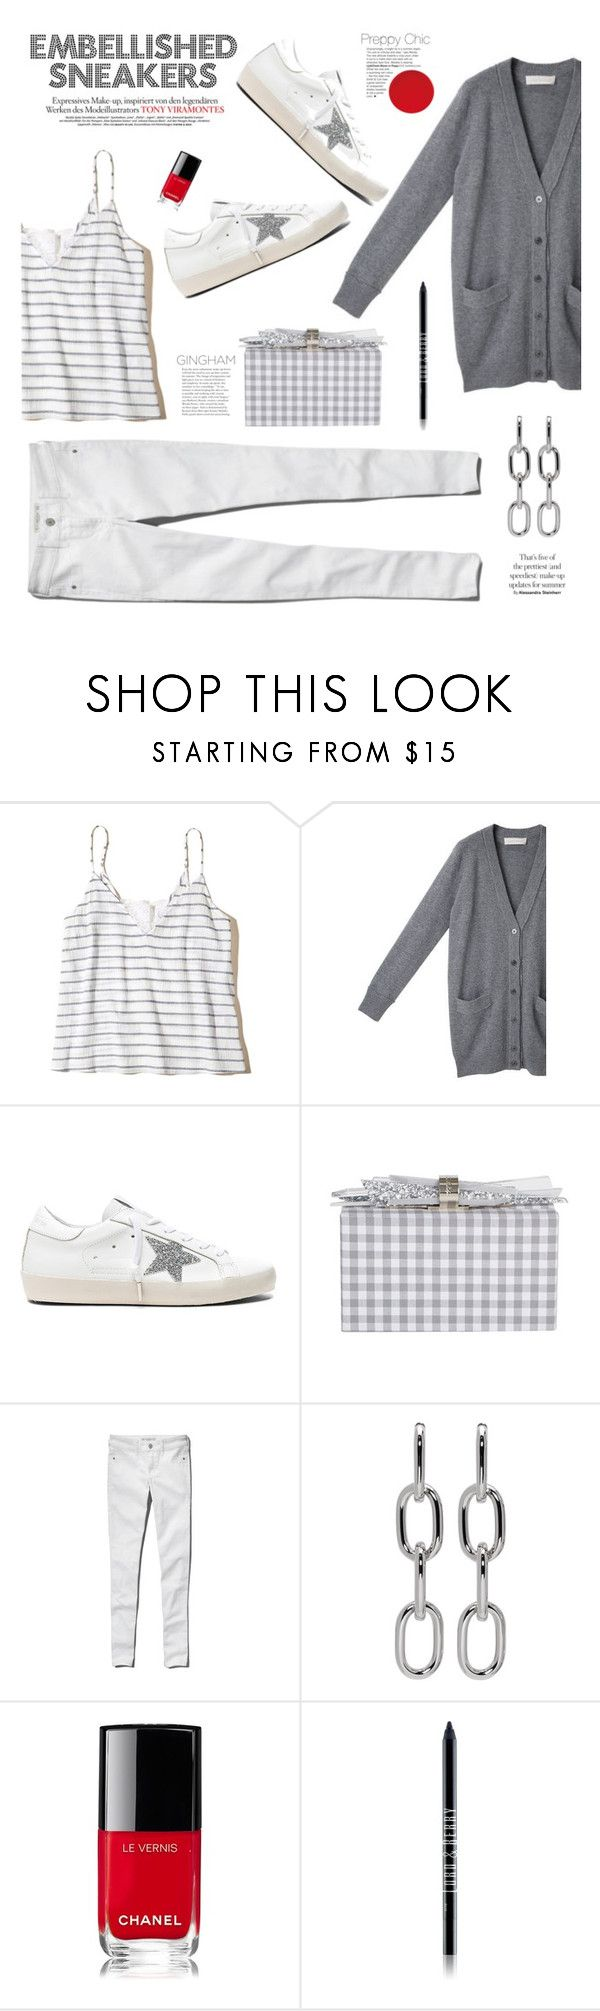 """""""Embellished Sneakers"""" by barngirl ❤ liked on Polyvore featuring Hollister Co., Cacharel, Golden Goose, Edie Parker, Abercrombie & Fitch, Alexander Wang, Chanel and Lord & Berry"""